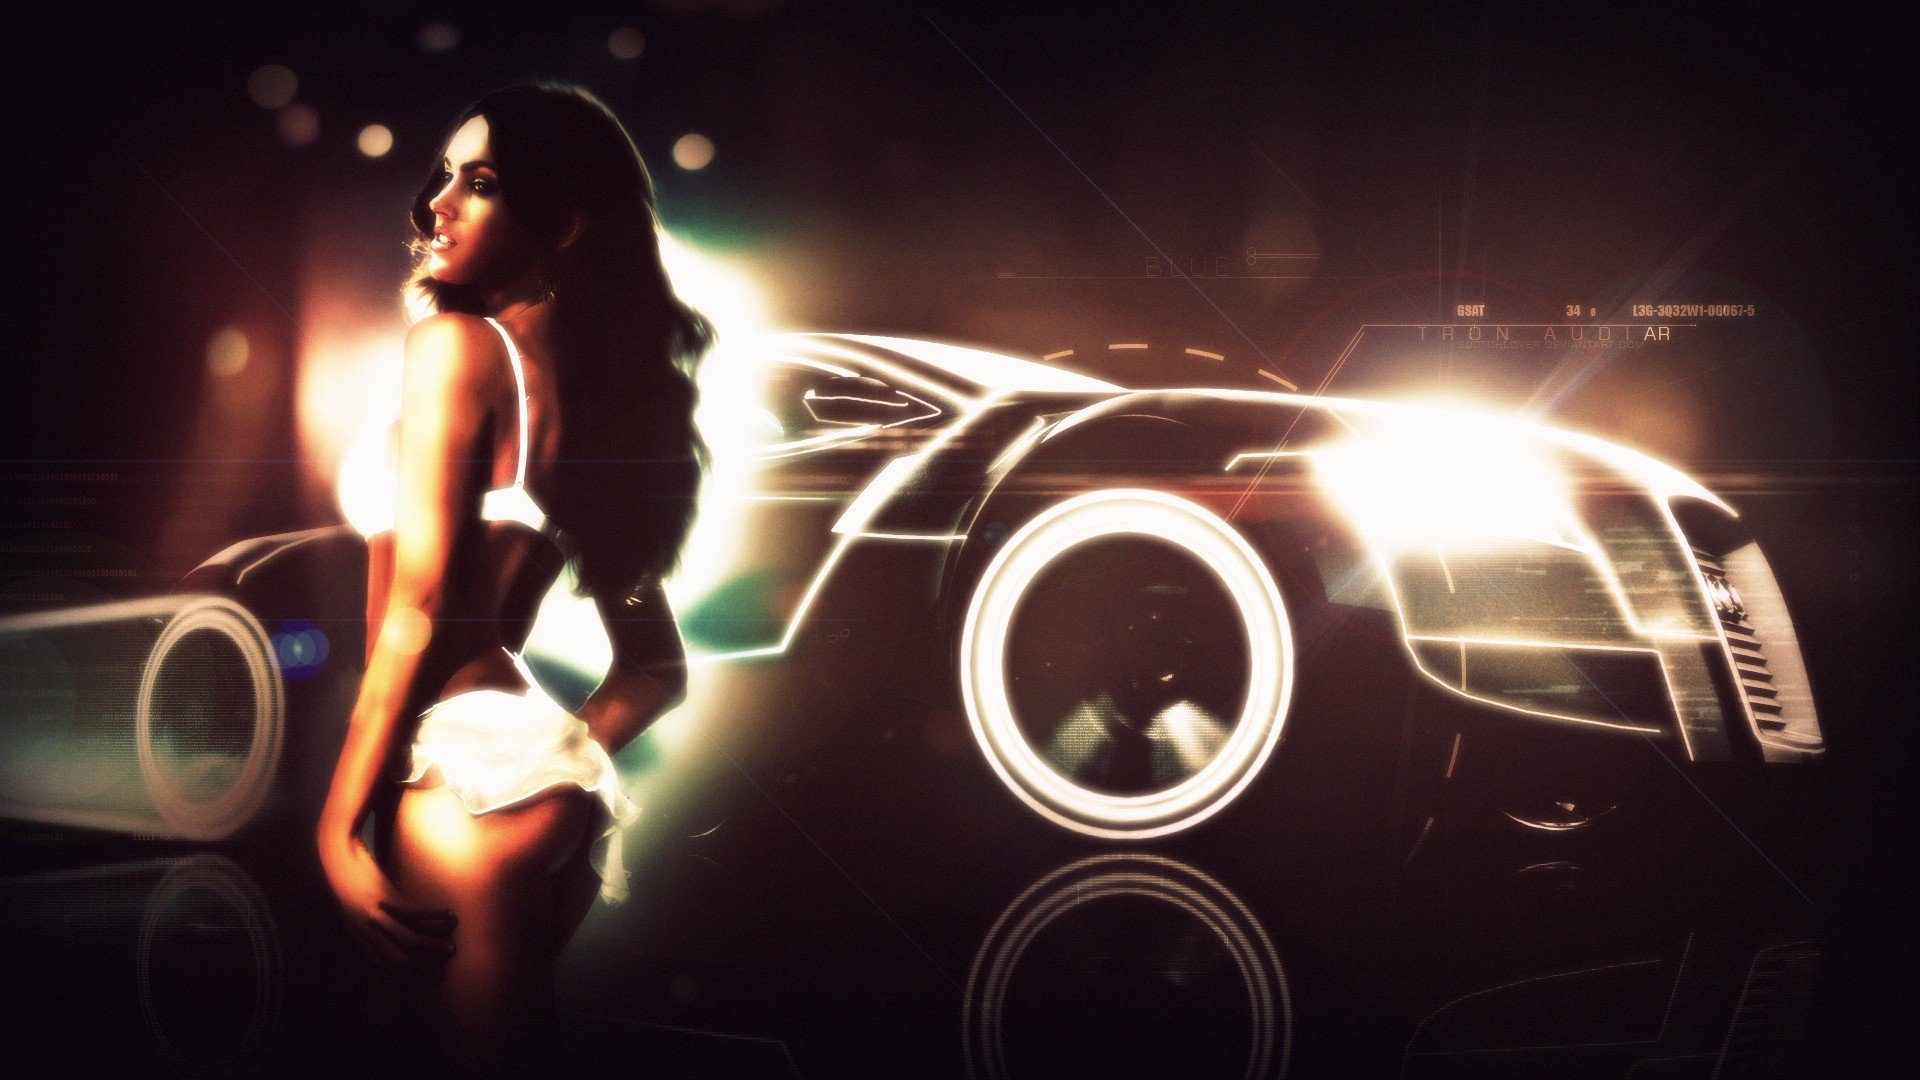 Megan Fox Tron Audi R8 Gt Spyder Girls With Cars Wallpaper